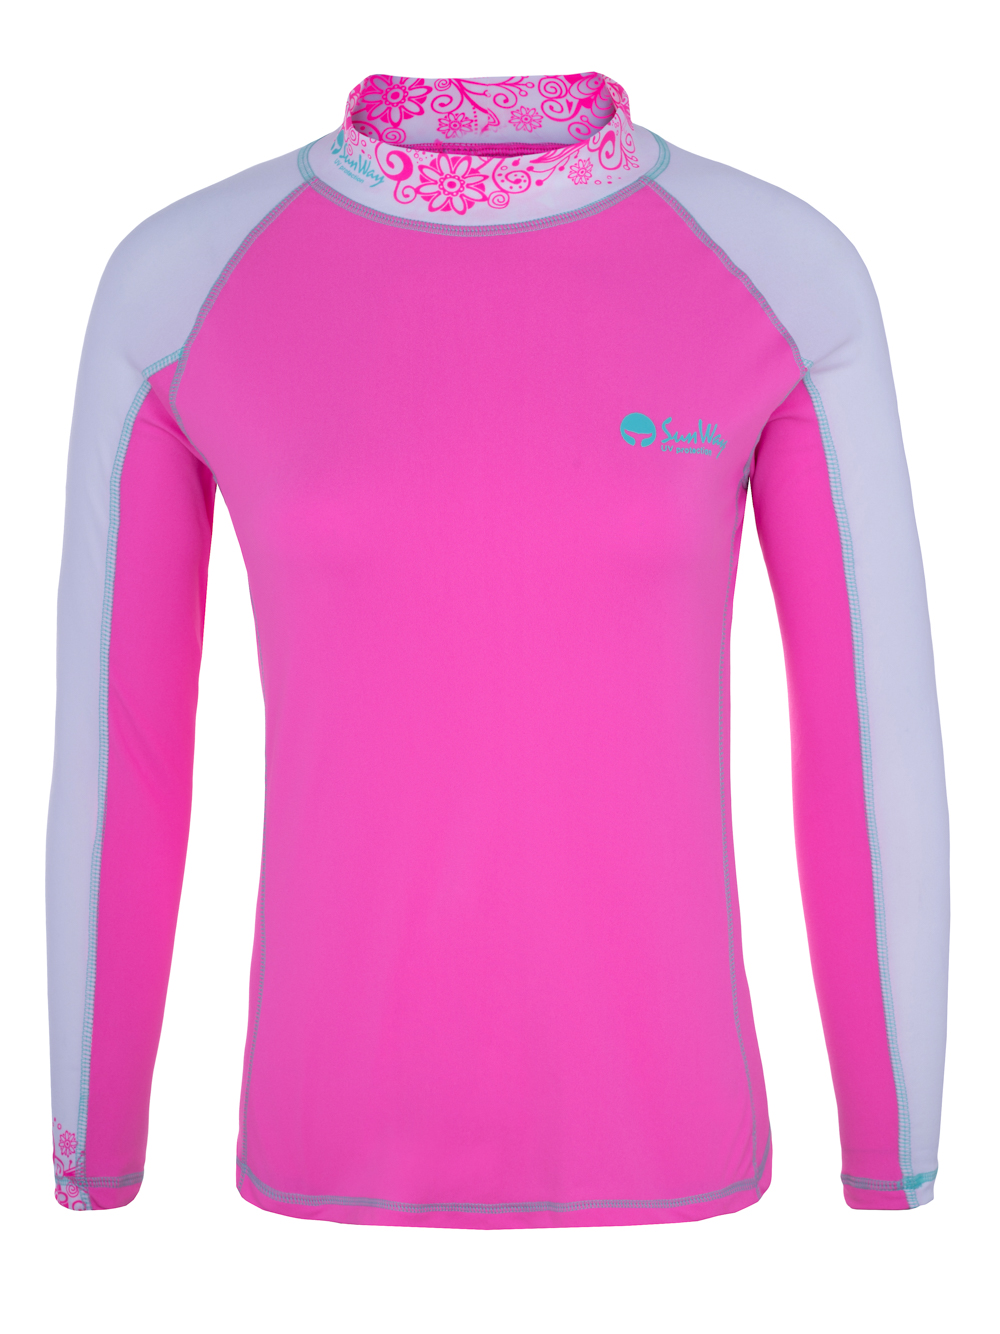 Long sleeves UV Swim shirt